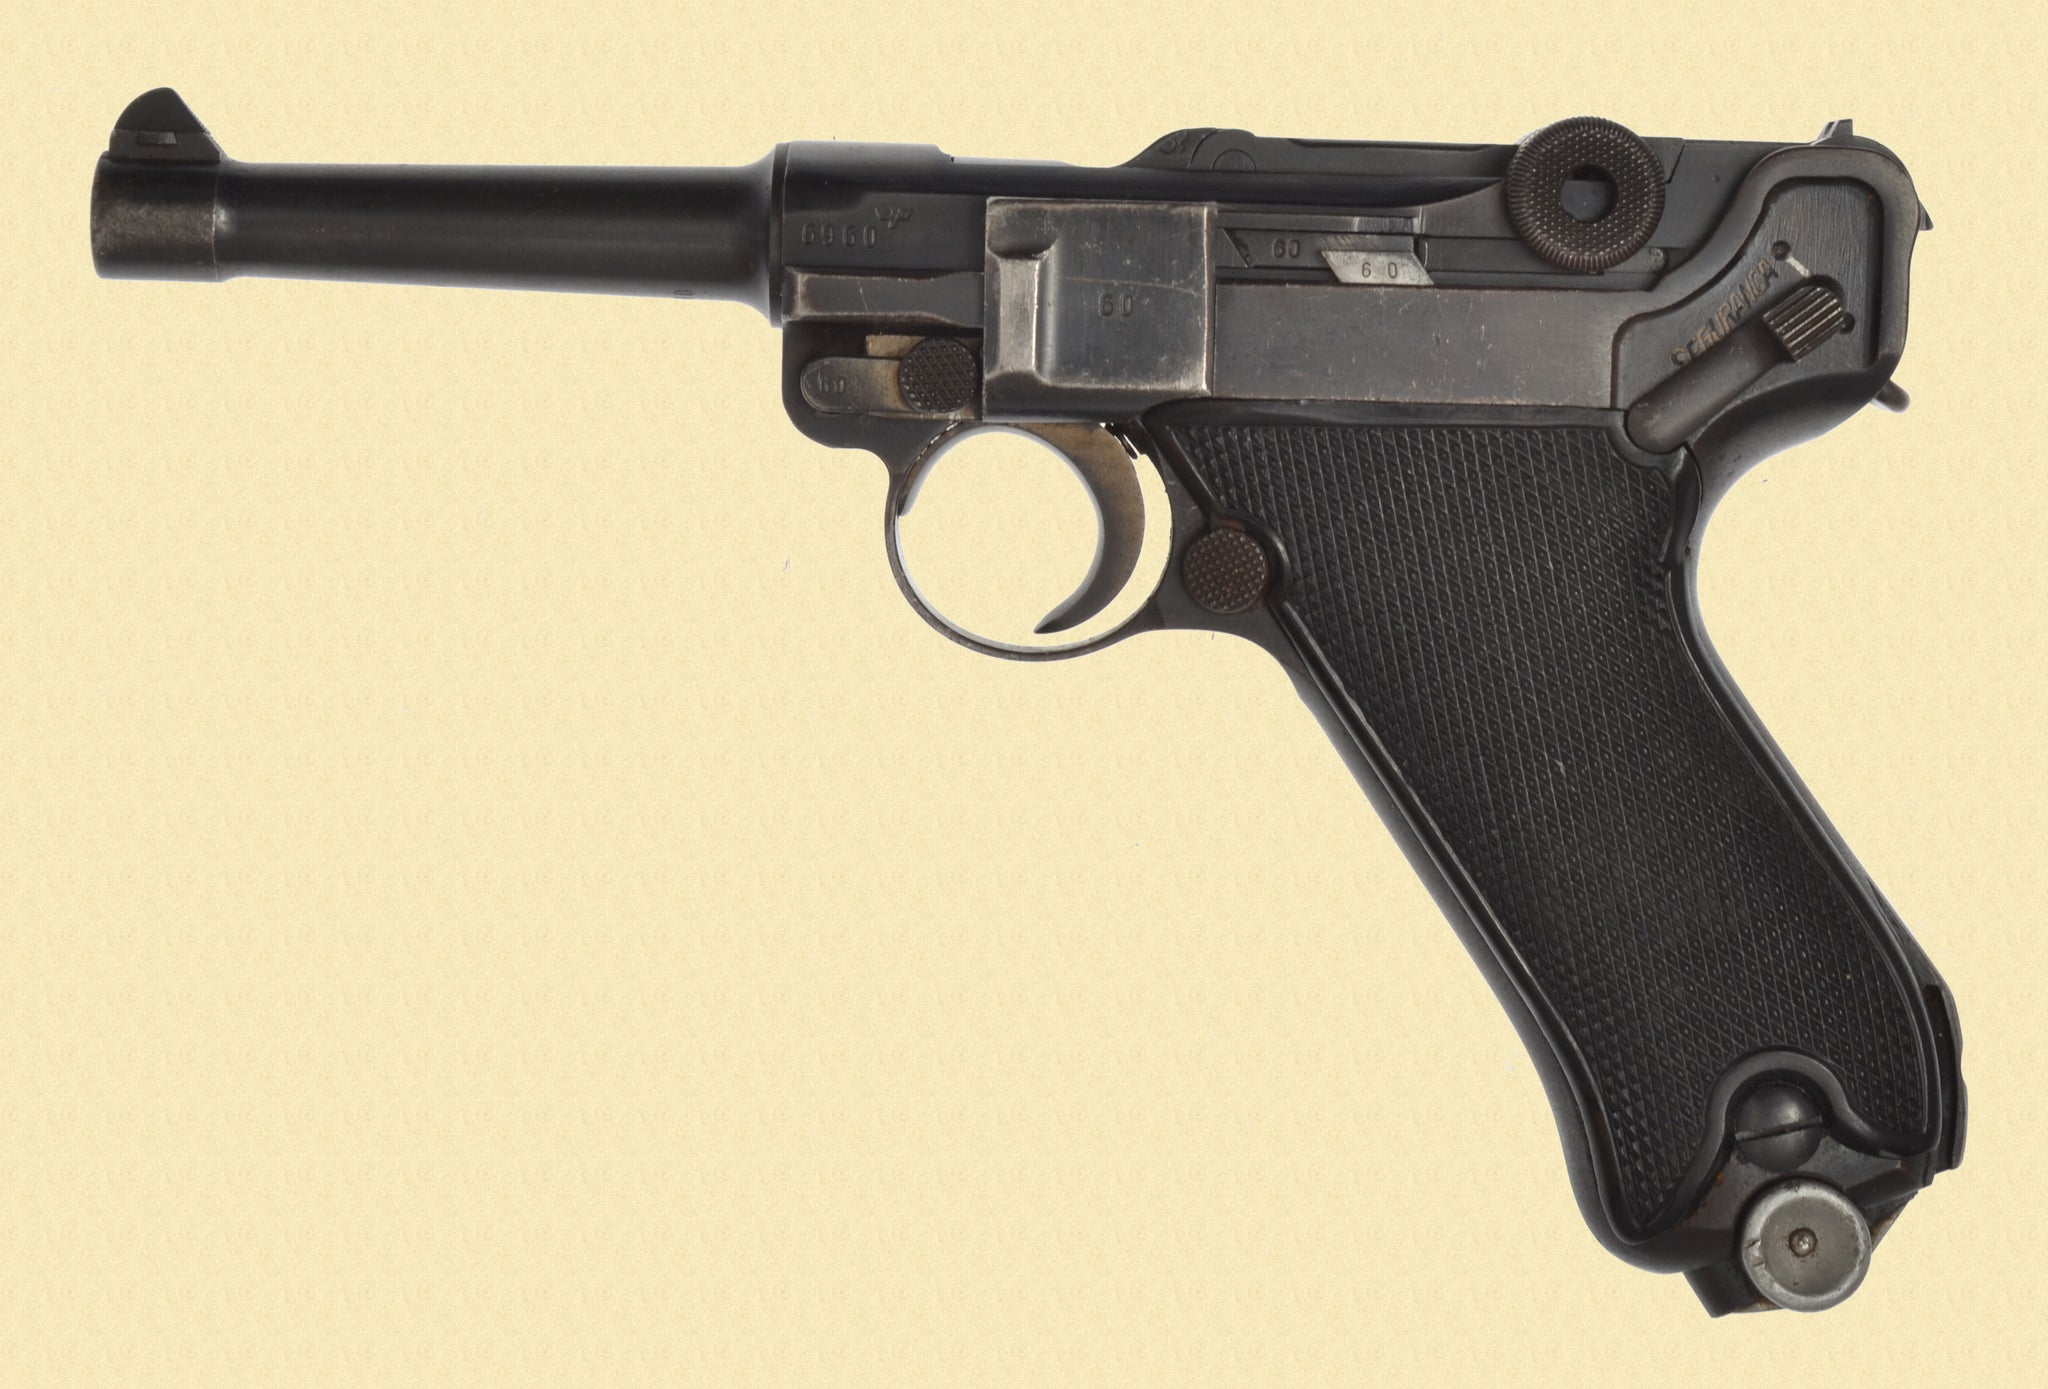 MAUSER 41 BANNER PORTUGUESE NAVY